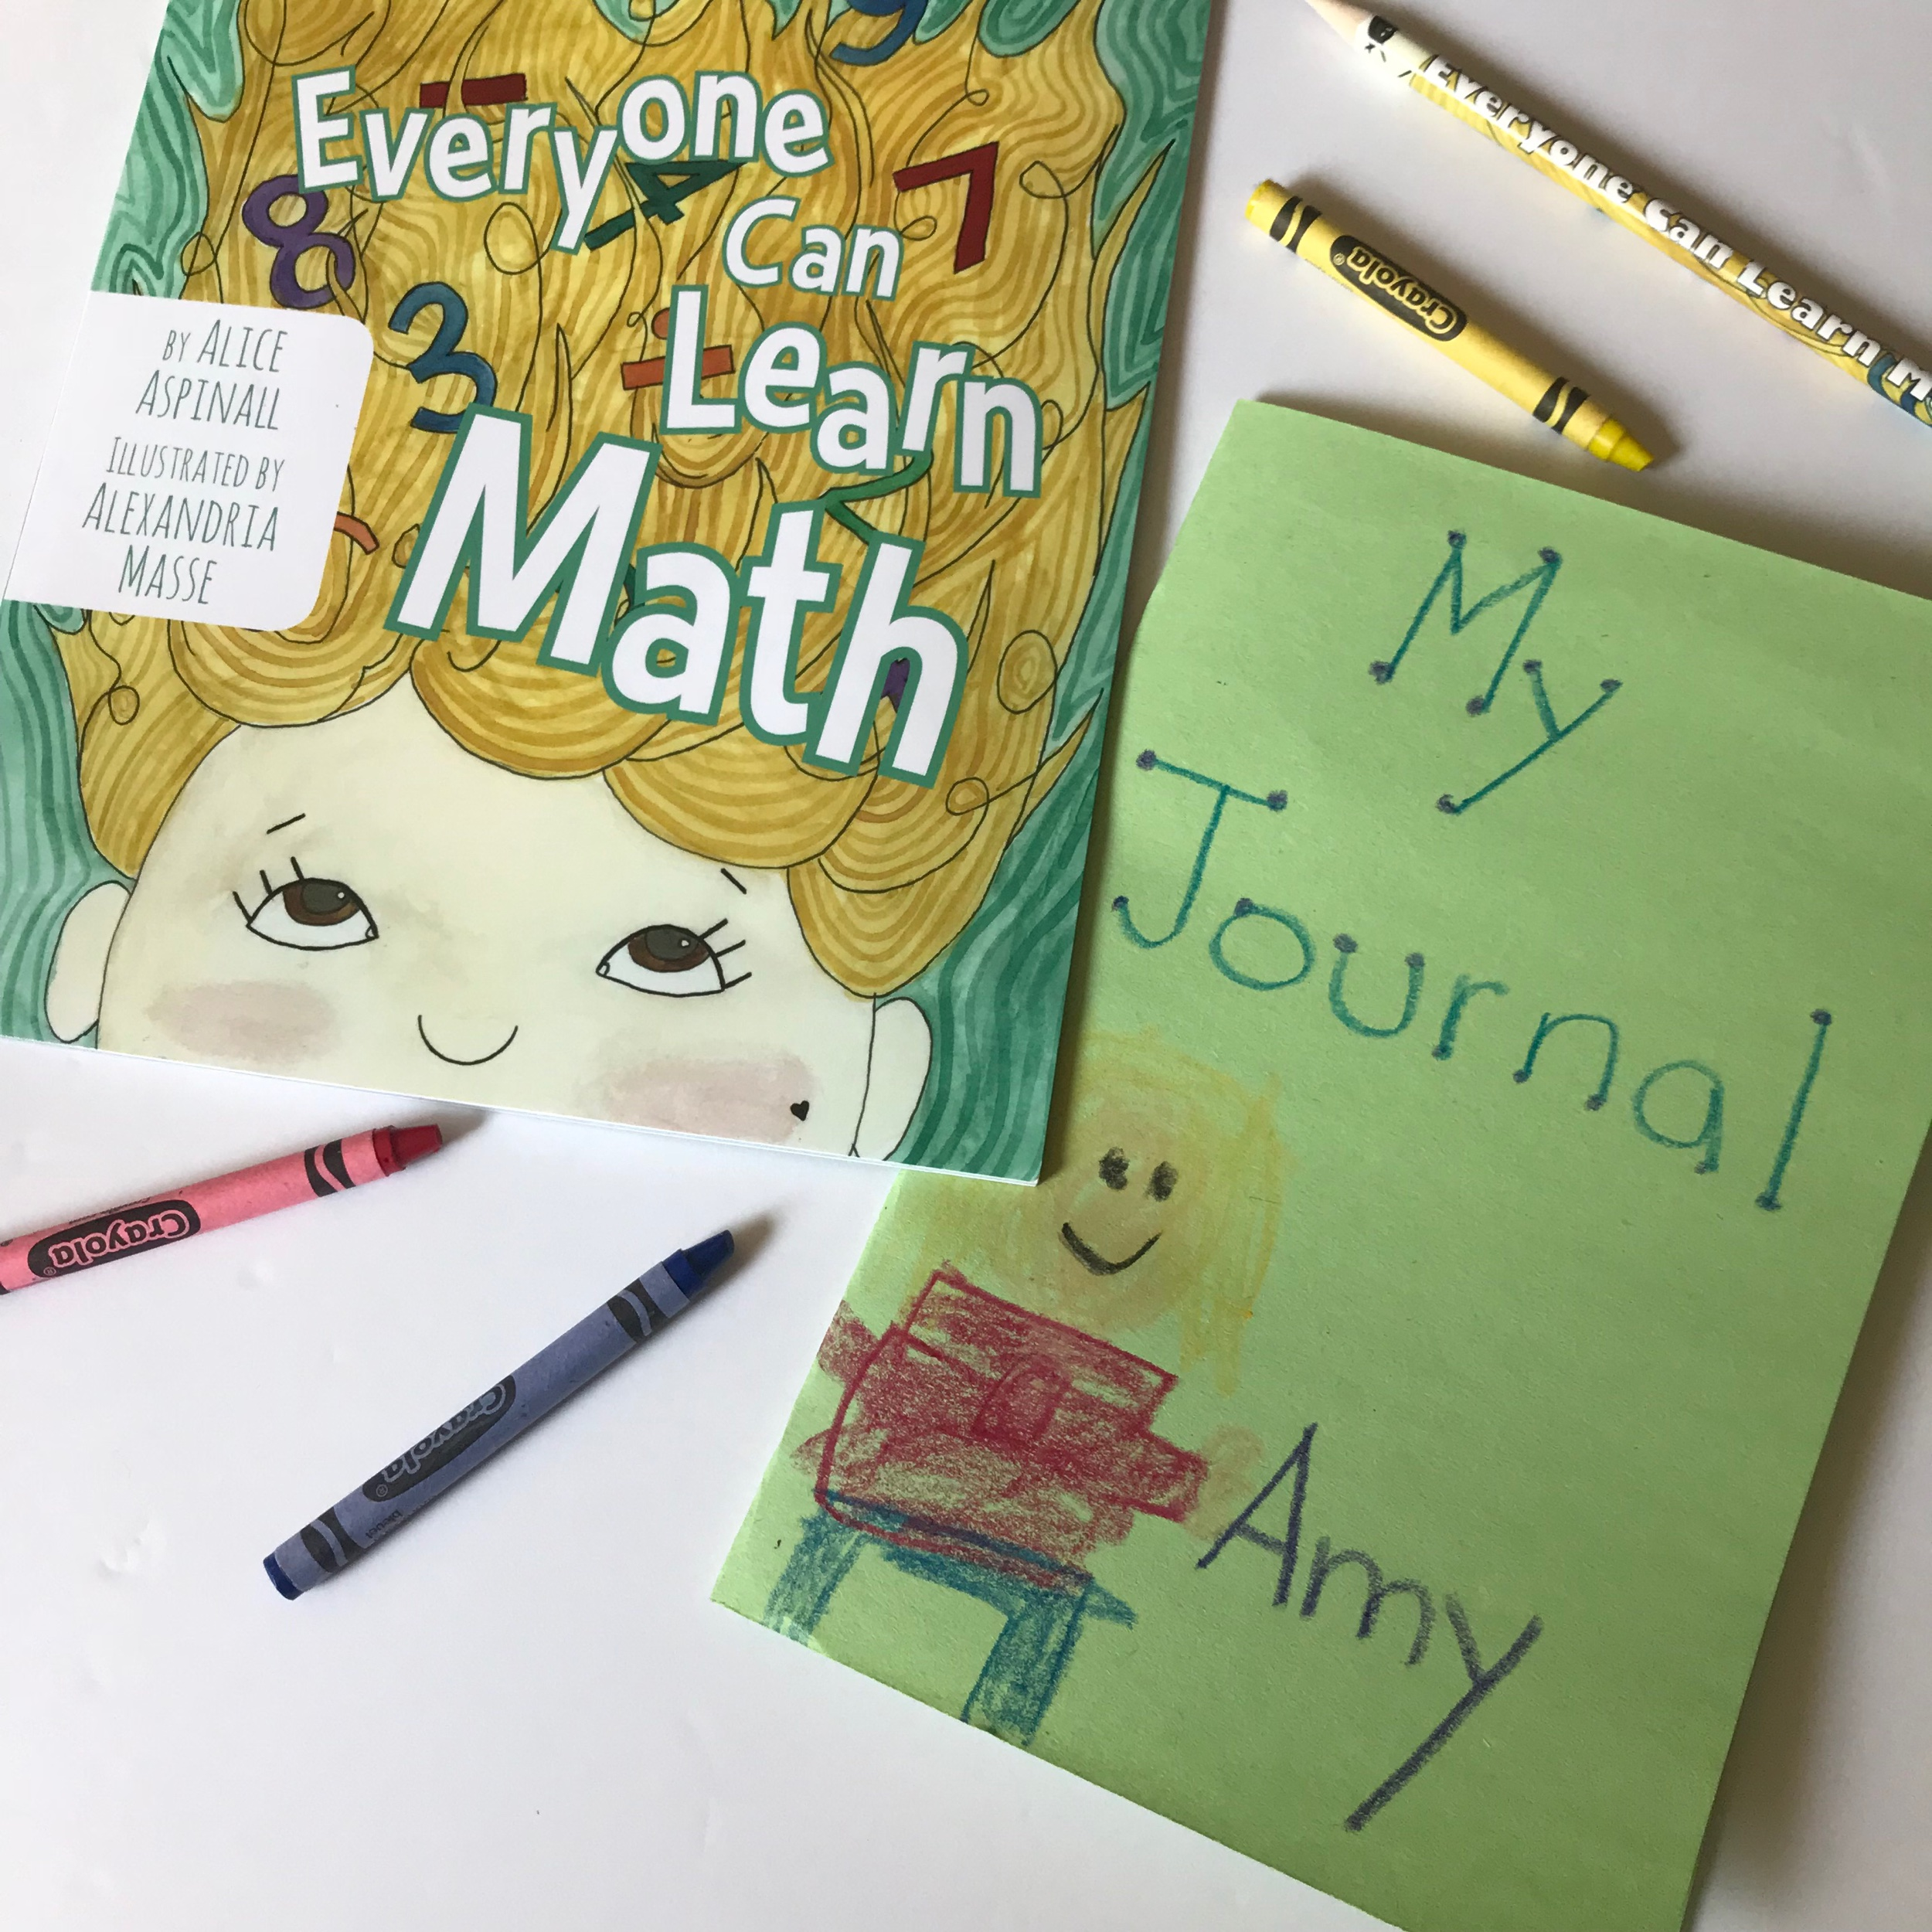 He created a journal, pretending to be Amy.